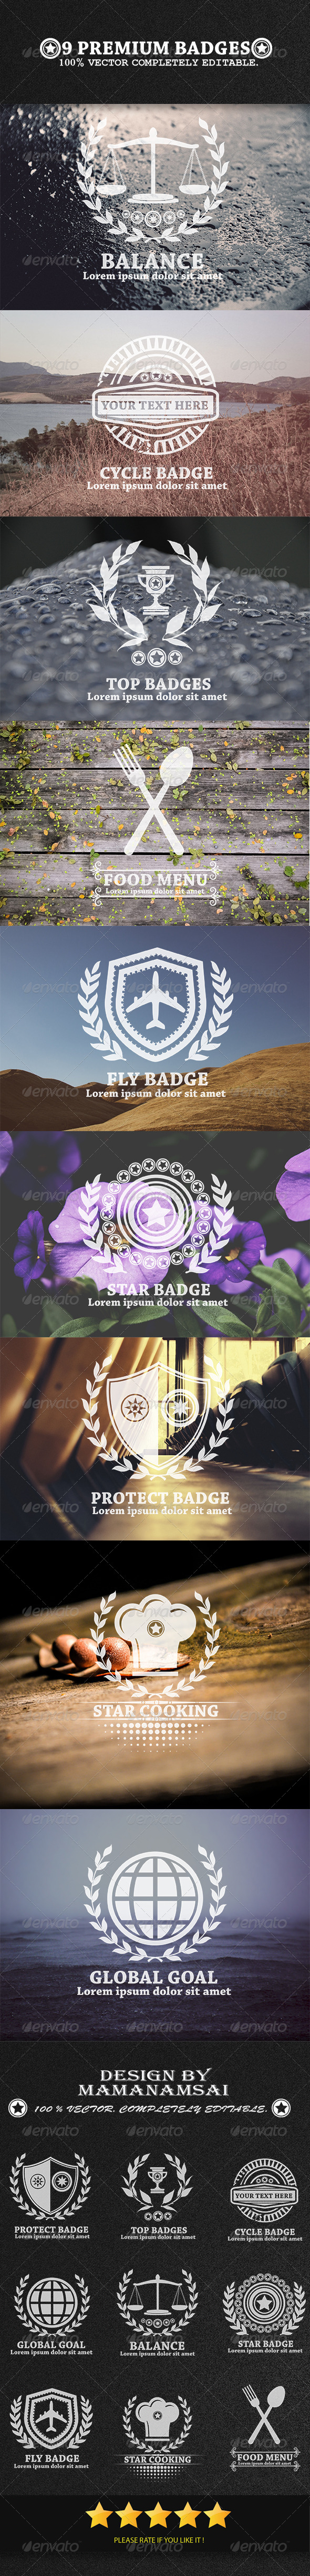 GraphicRiver 9 Premium Badges 6606833